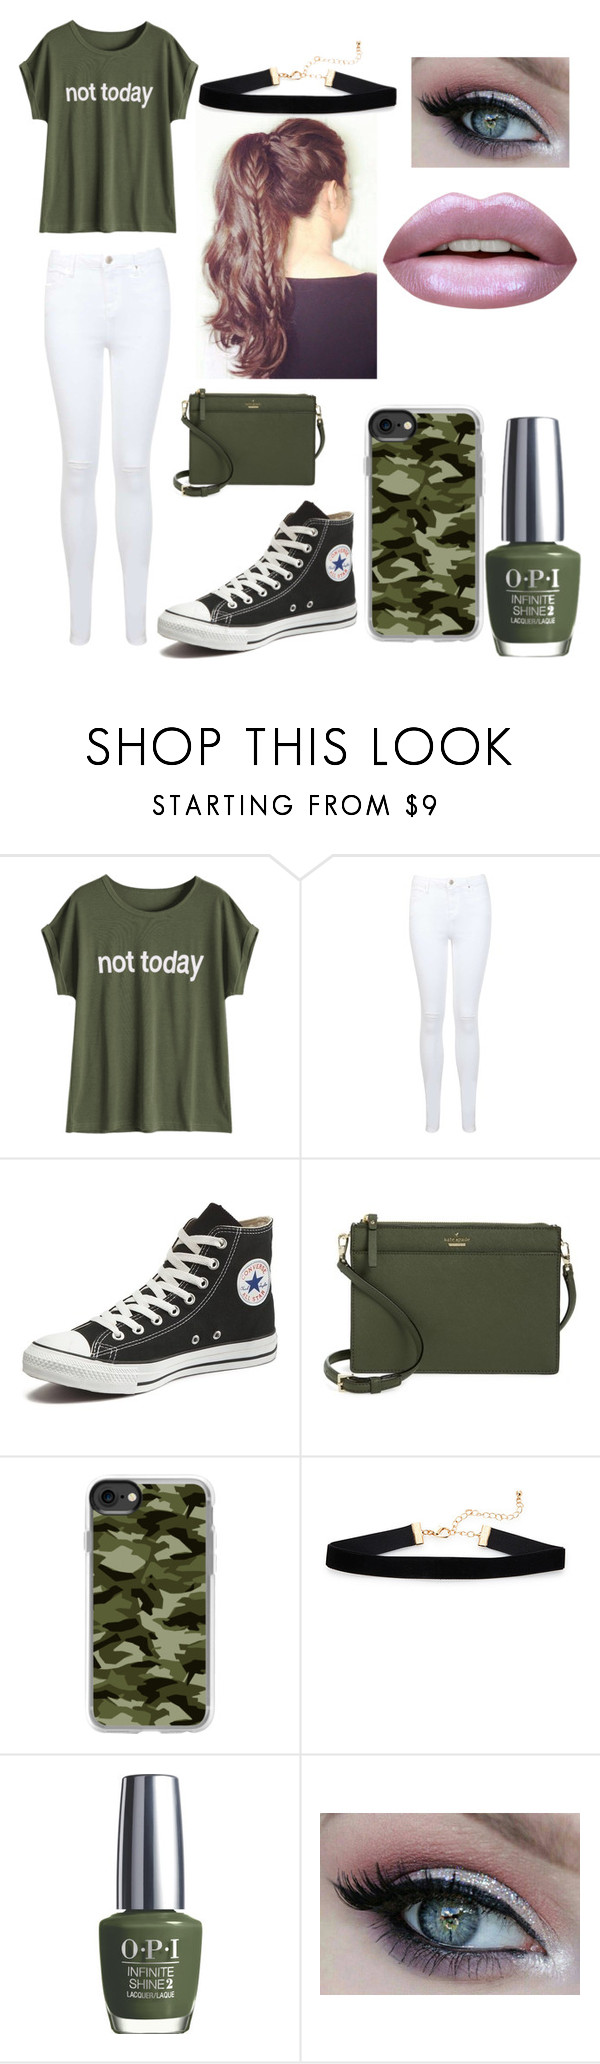 """new outfit"" by ellzmae ❤ liked on Polyvore featuring Miss Selfridge, Converse, Kate Spade, Casetify, OPI and Huda Beauty"